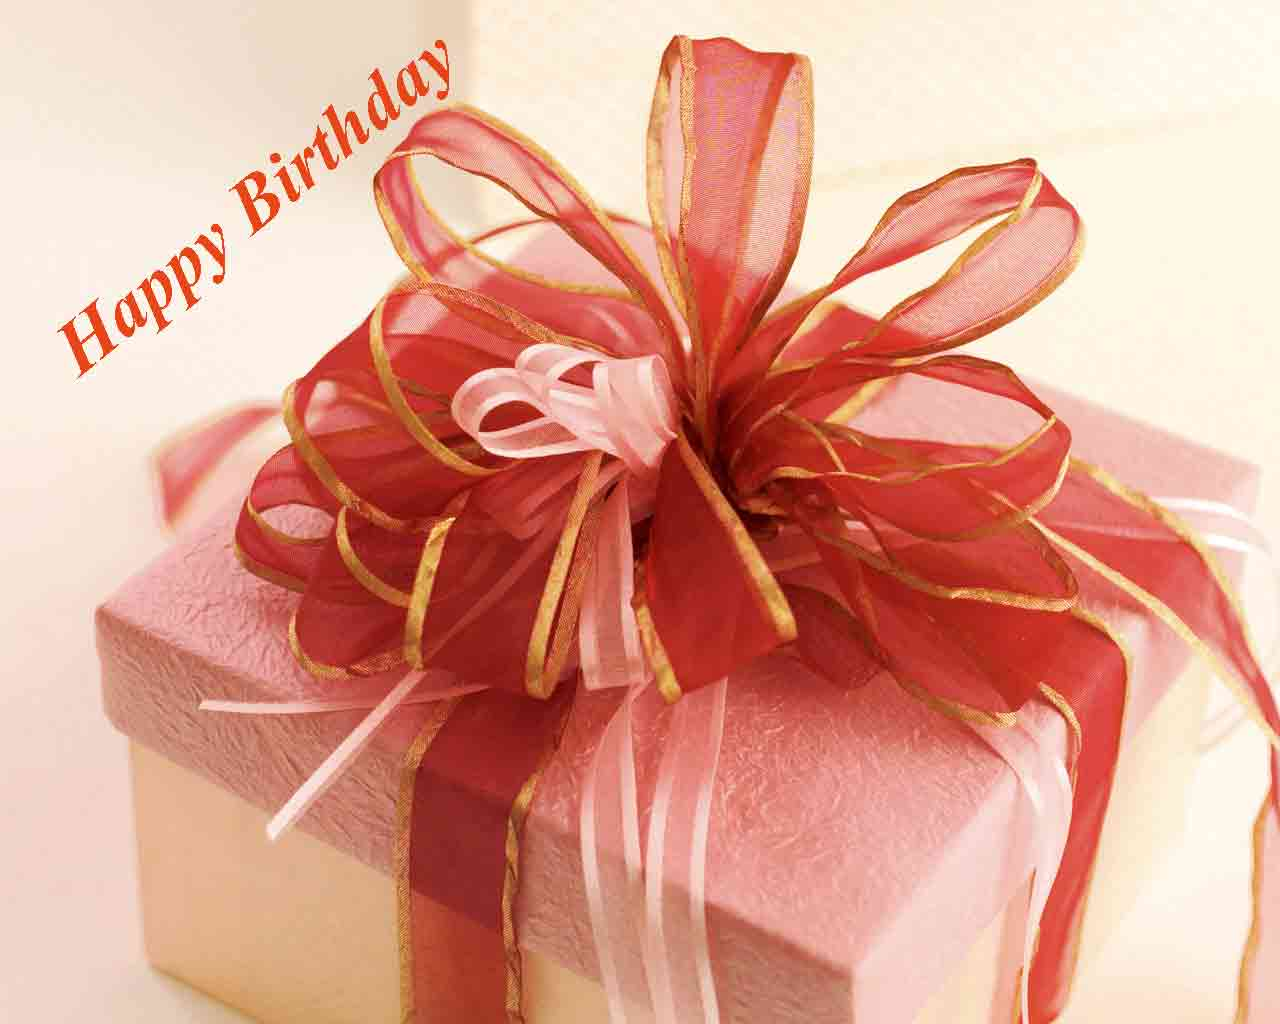 Happy Birthday Gifts Wallpaper With Resolutions 12801024 Pixel 1280x1024